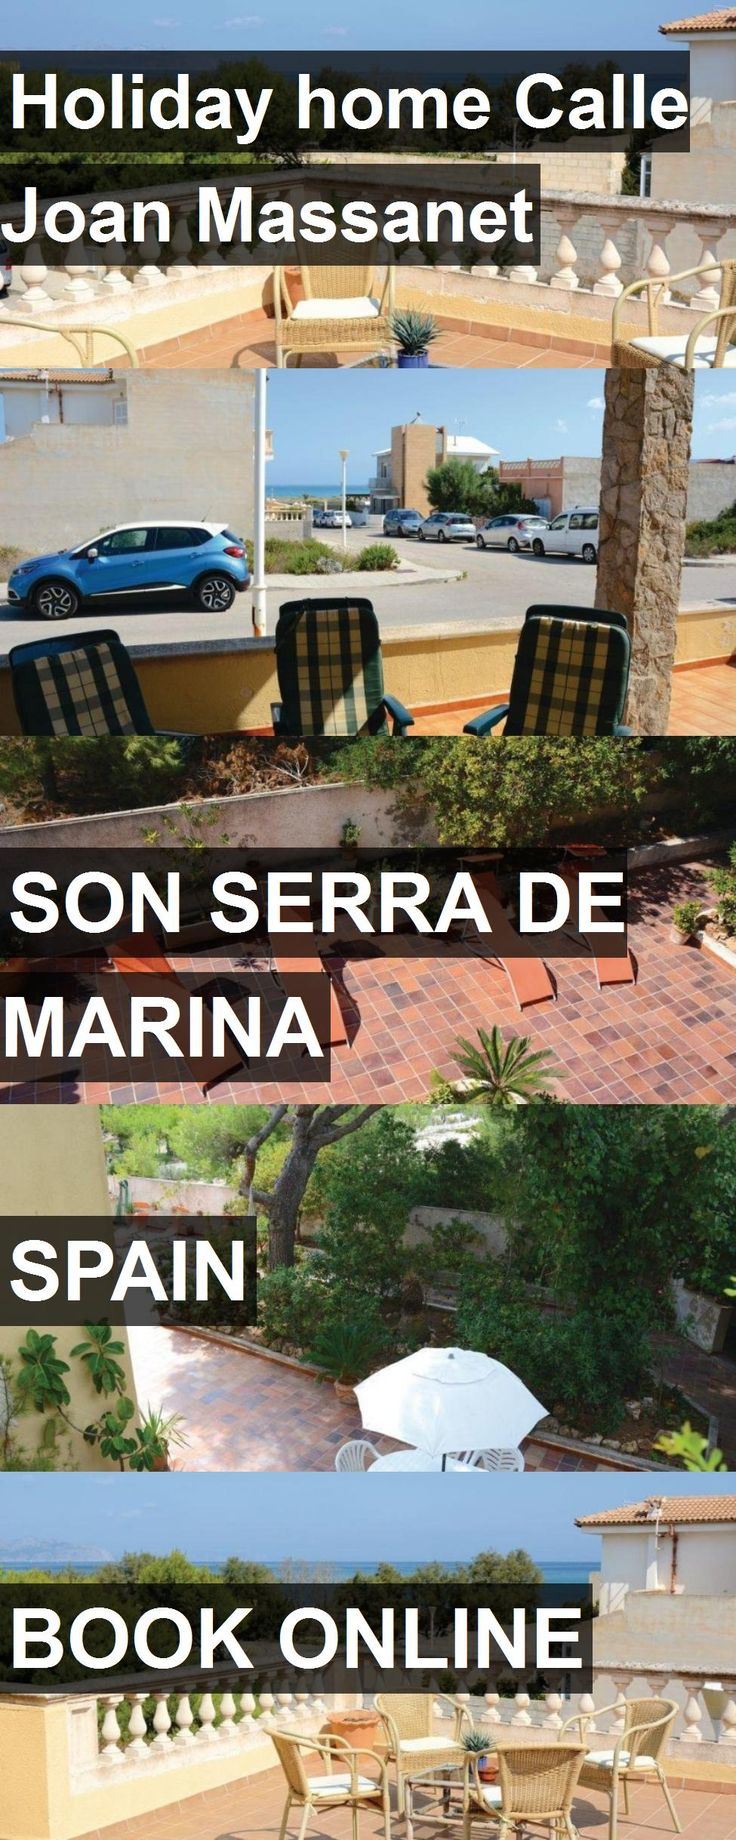 Hotel Holiday home Calle Joan Massanet in Son Serra de Marina, Spain. For more information, photos, reviews and best prices please follow the link. #Spain #SonSerradeMarina #travel #vacation #hotel